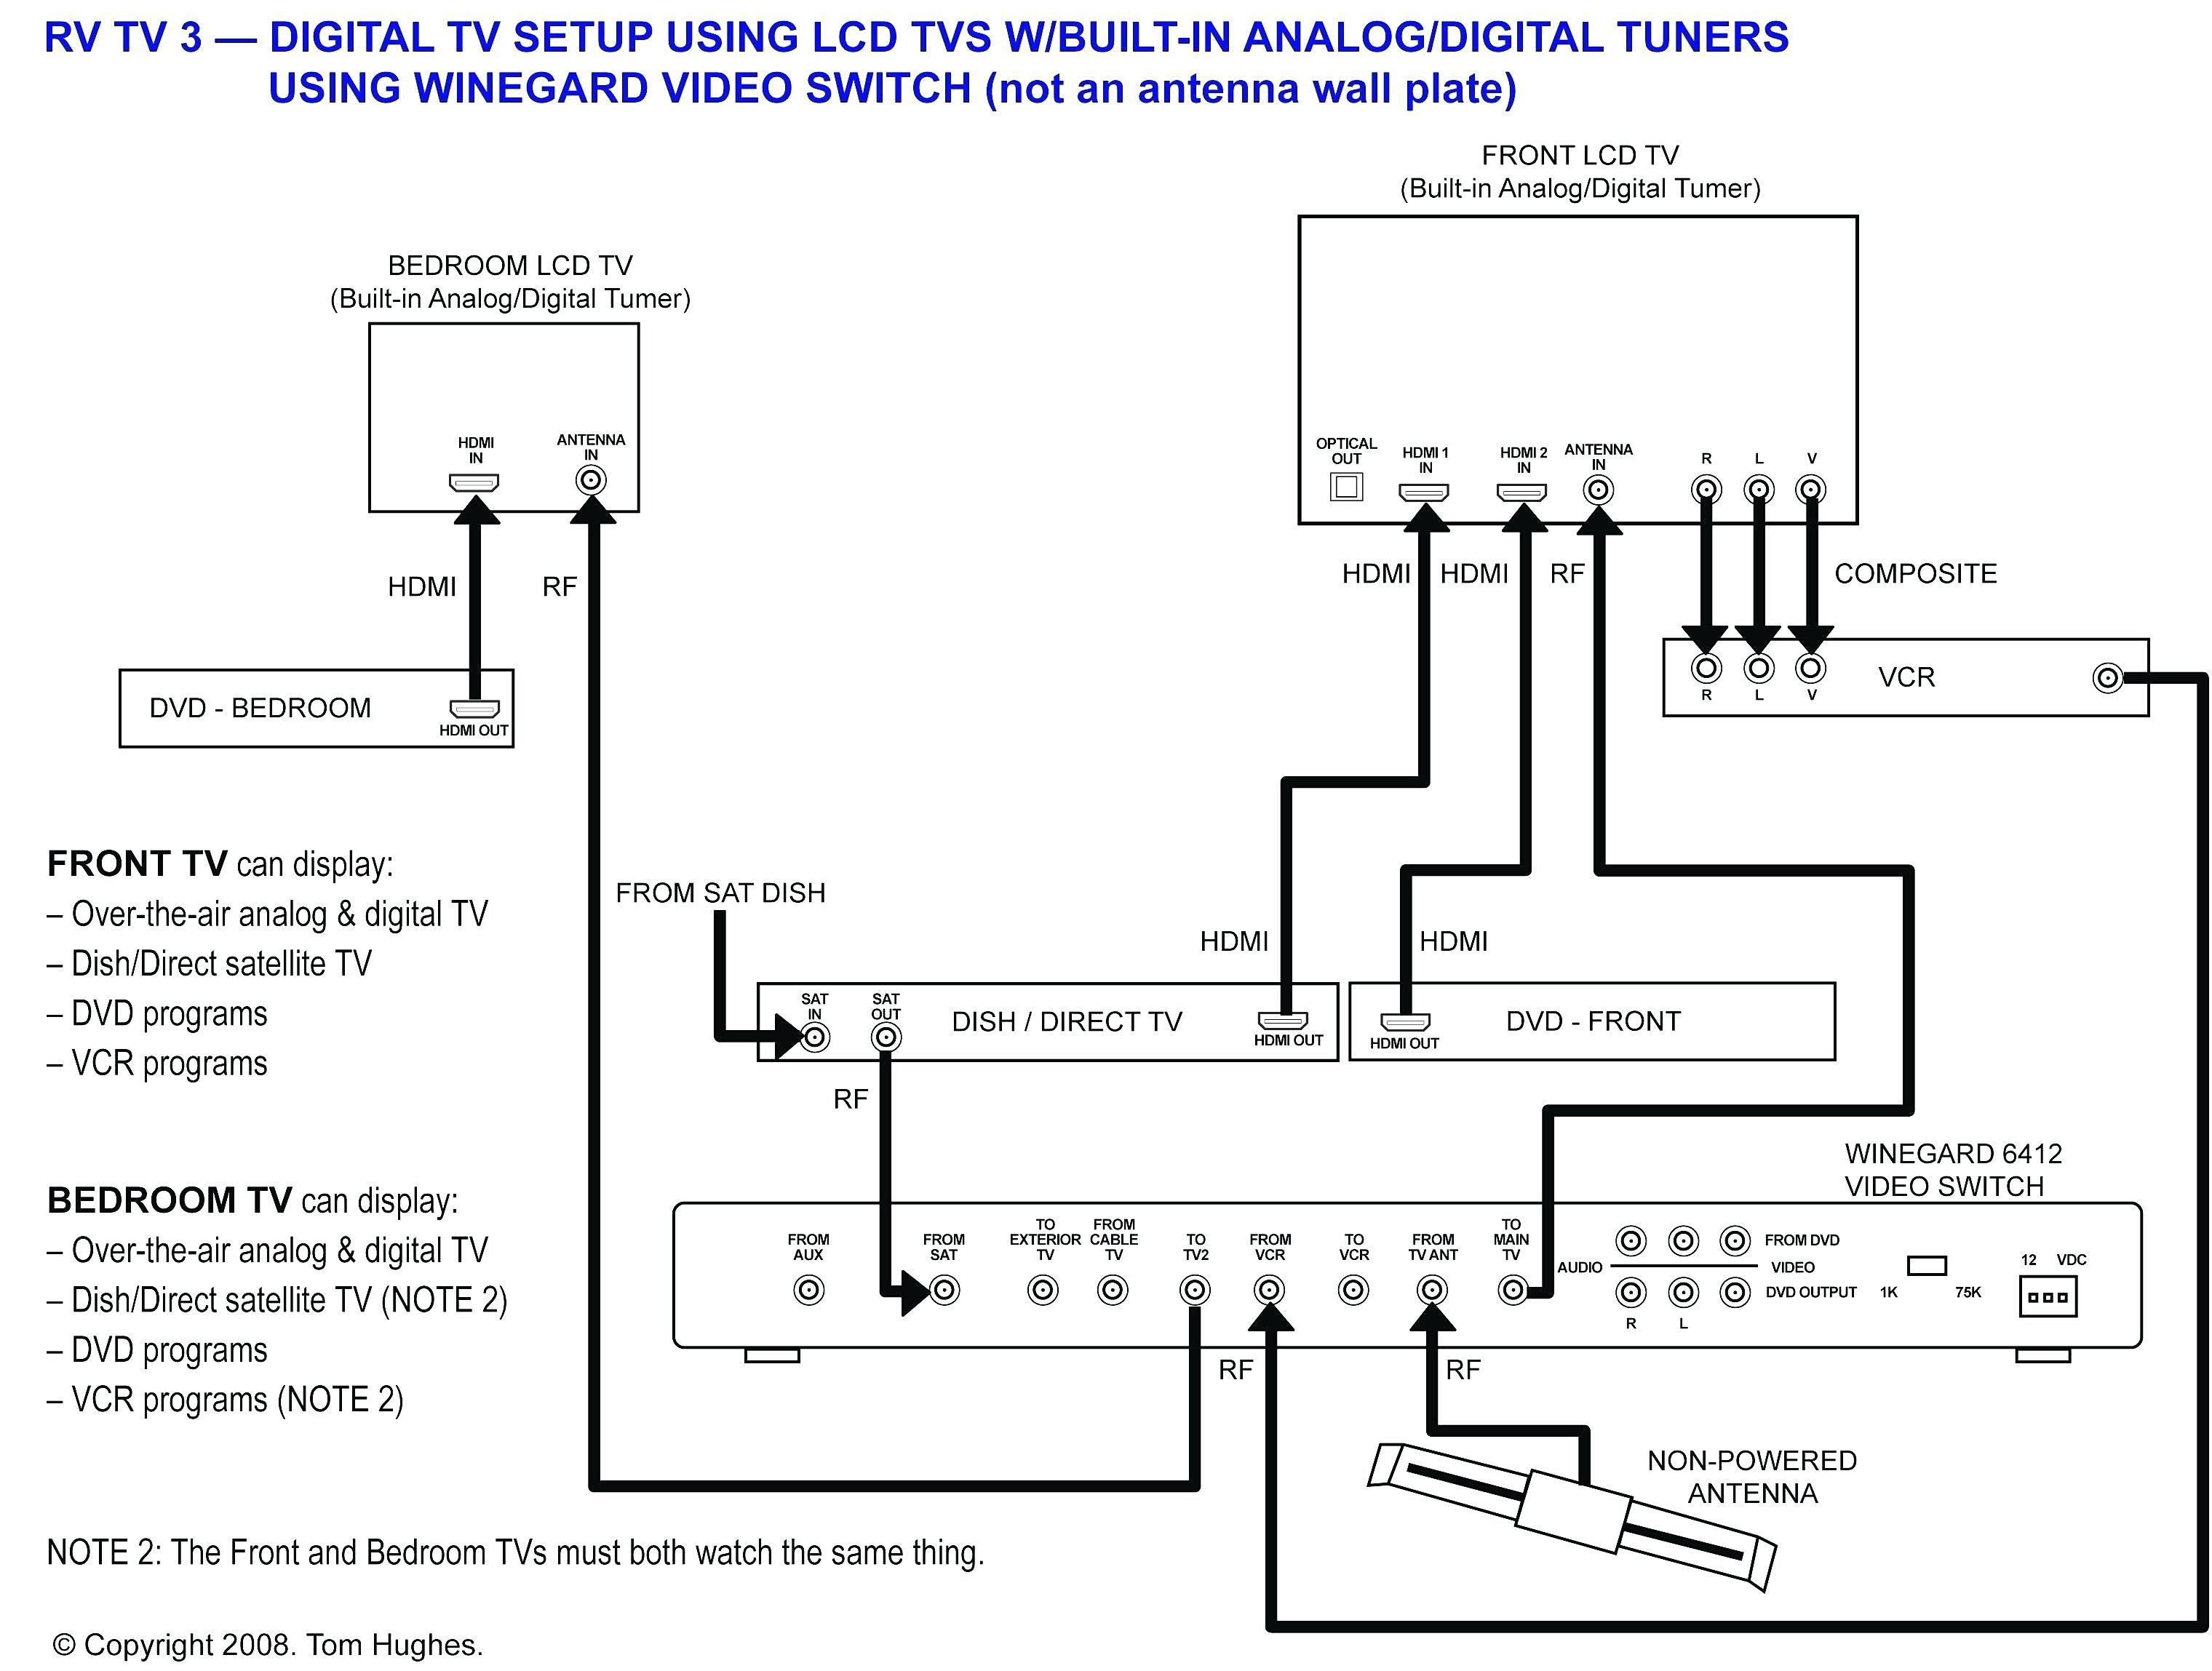 Tv Wiring Diagram Jayco Jay Flight - Cub Cadet 122 Wiring Diagram -  autostereo.wiringdol.jeanjaures37.fr | Tv Wiring Diagram Jayco Jay Flight |  | Wiring Diagram Resource